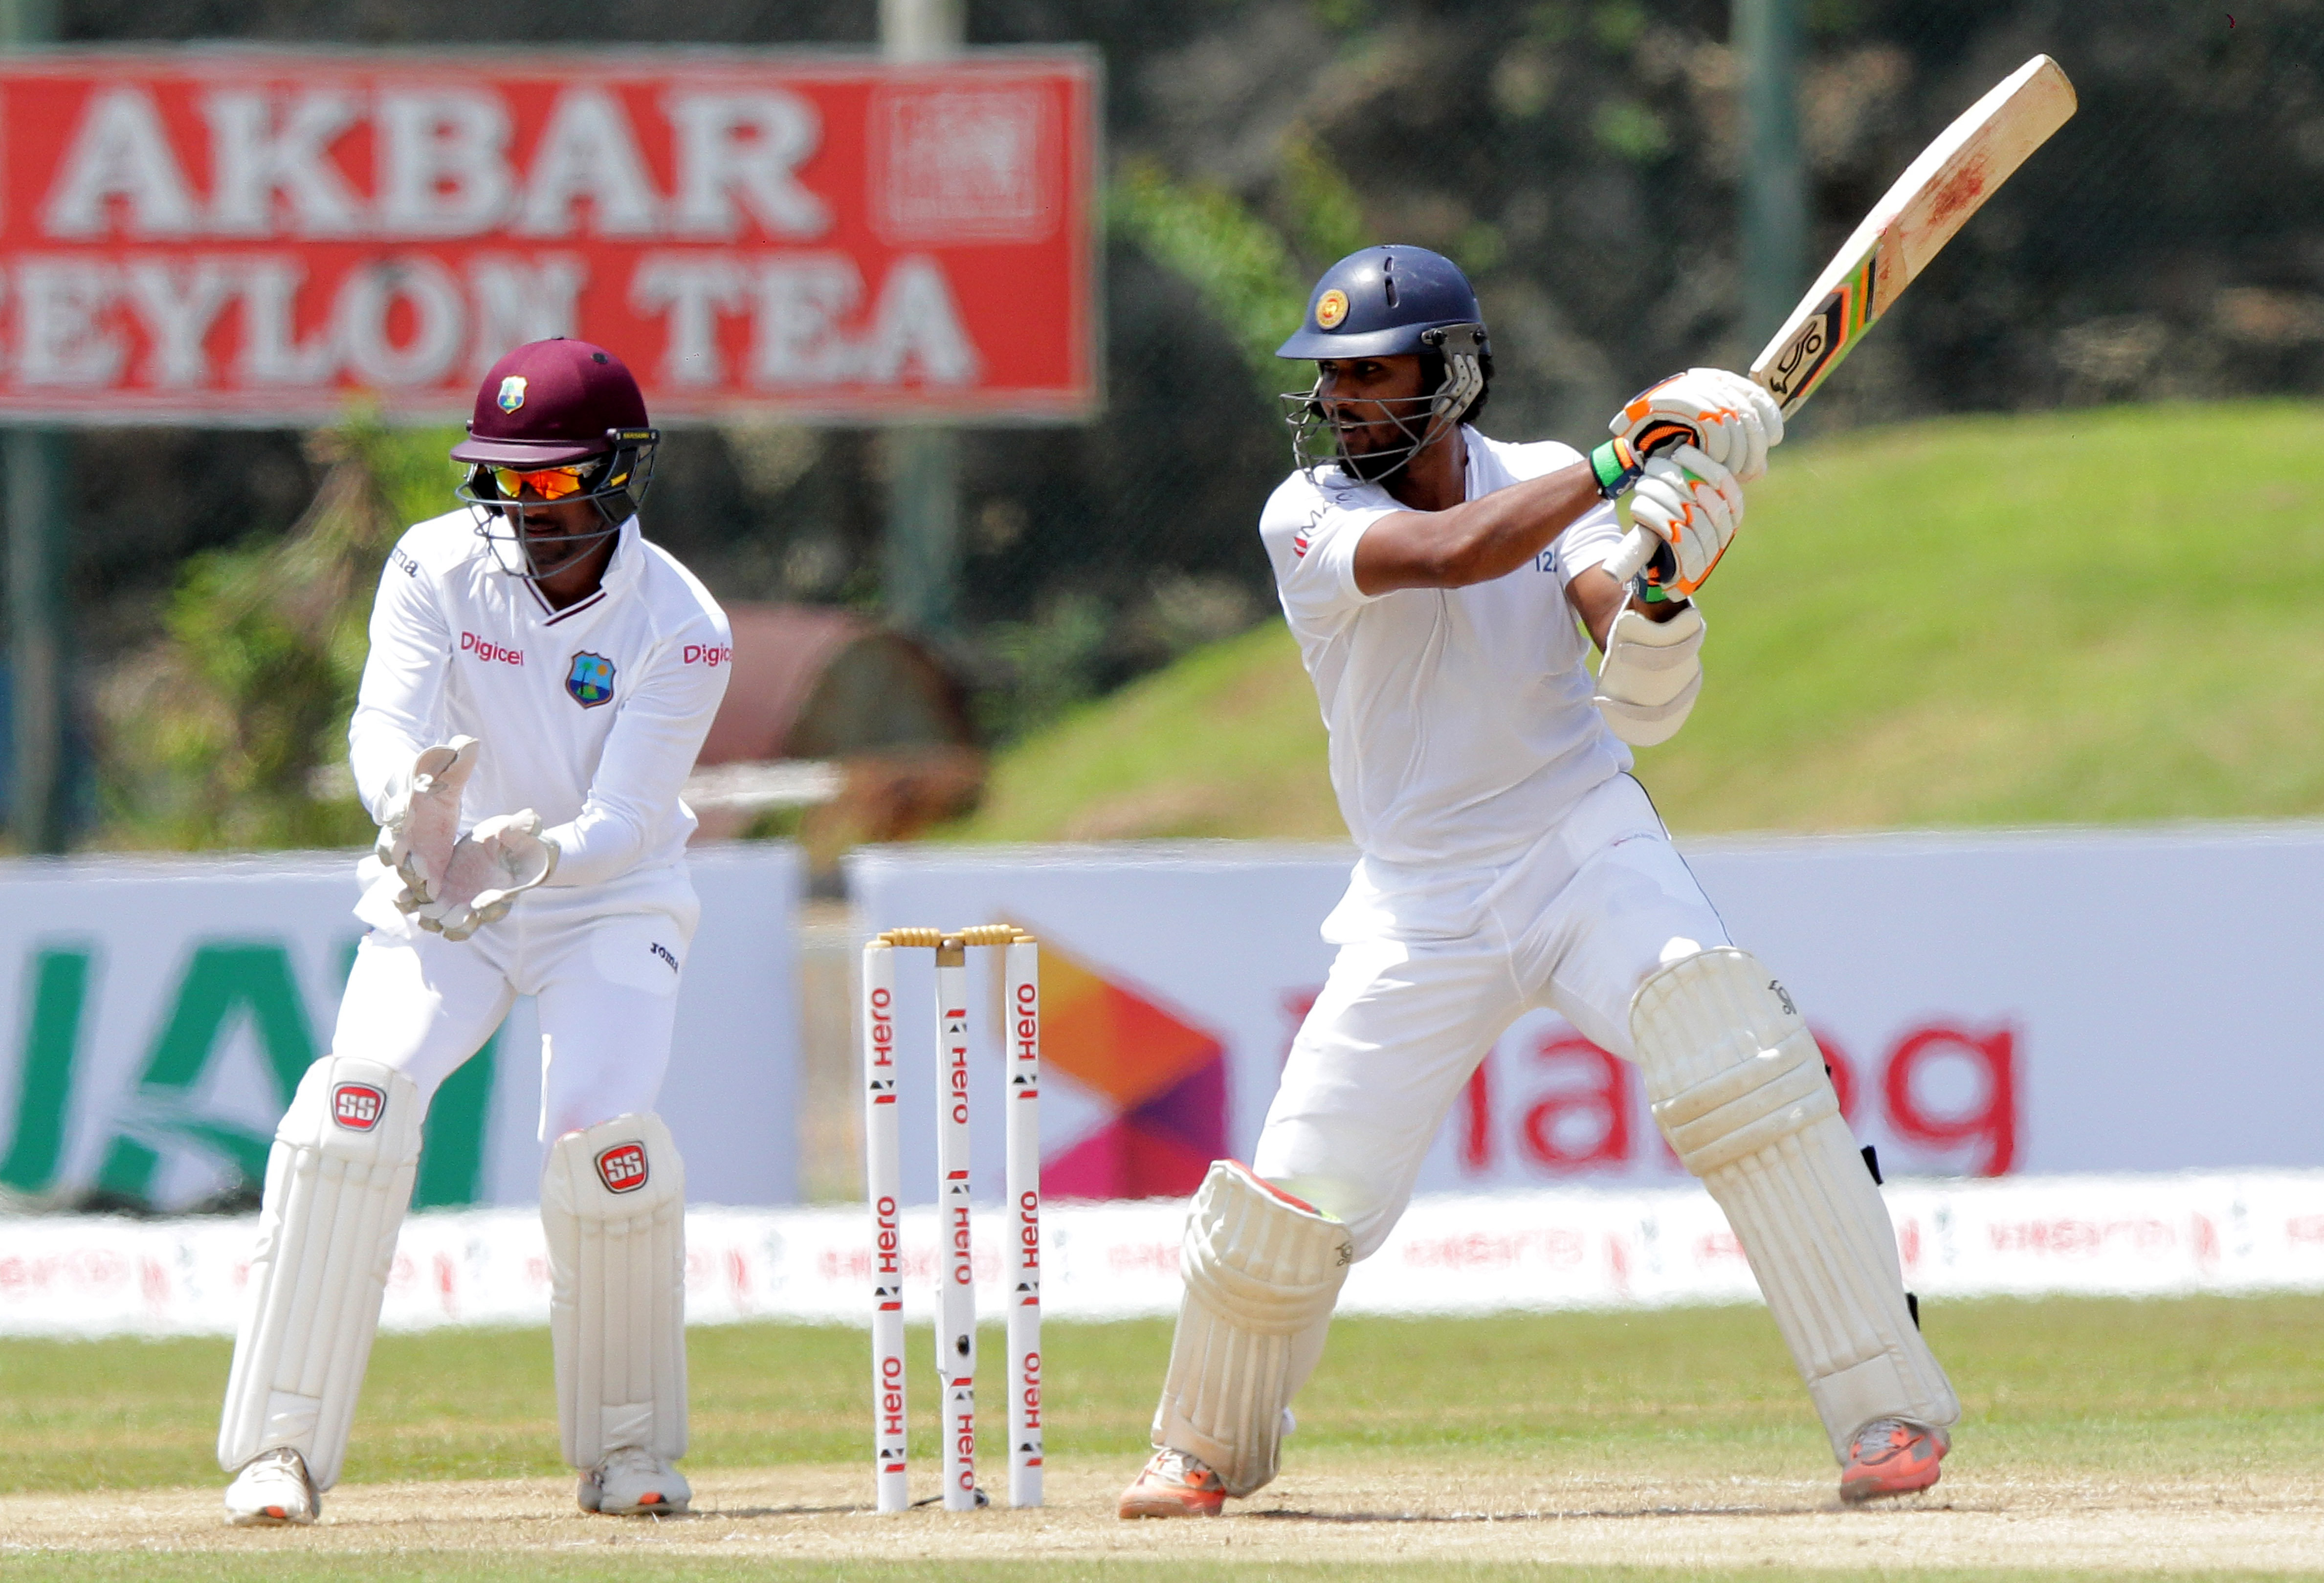 Sri Lankan cricketer Dinesh Chandimal bats, as West Indies' wicketkeeper Dinesh Ramdin looks on during the second day of the first test cricket match against West Indies in Galle, Sri Lanka, Thursday, Oct. 15, 2015. ( AP Photo/ Pamod Nilru )